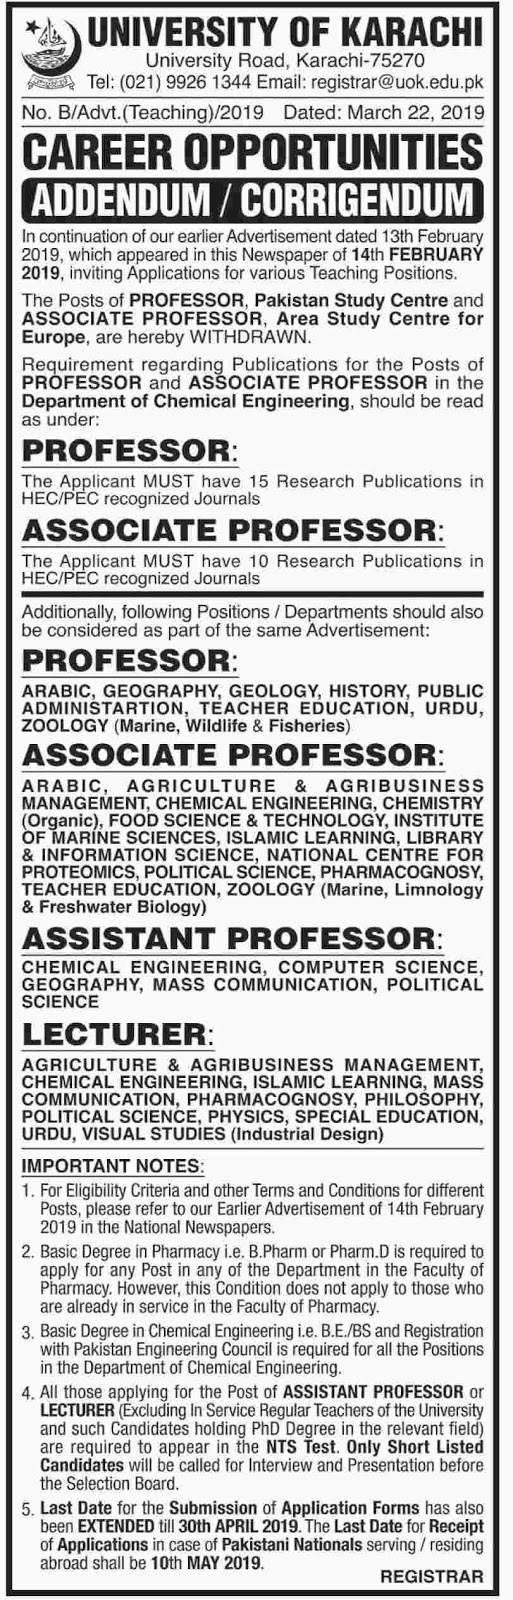 ➨ #Jobs - #Career_Opportunities - #Jobs at University of Karachi –for application visit the link